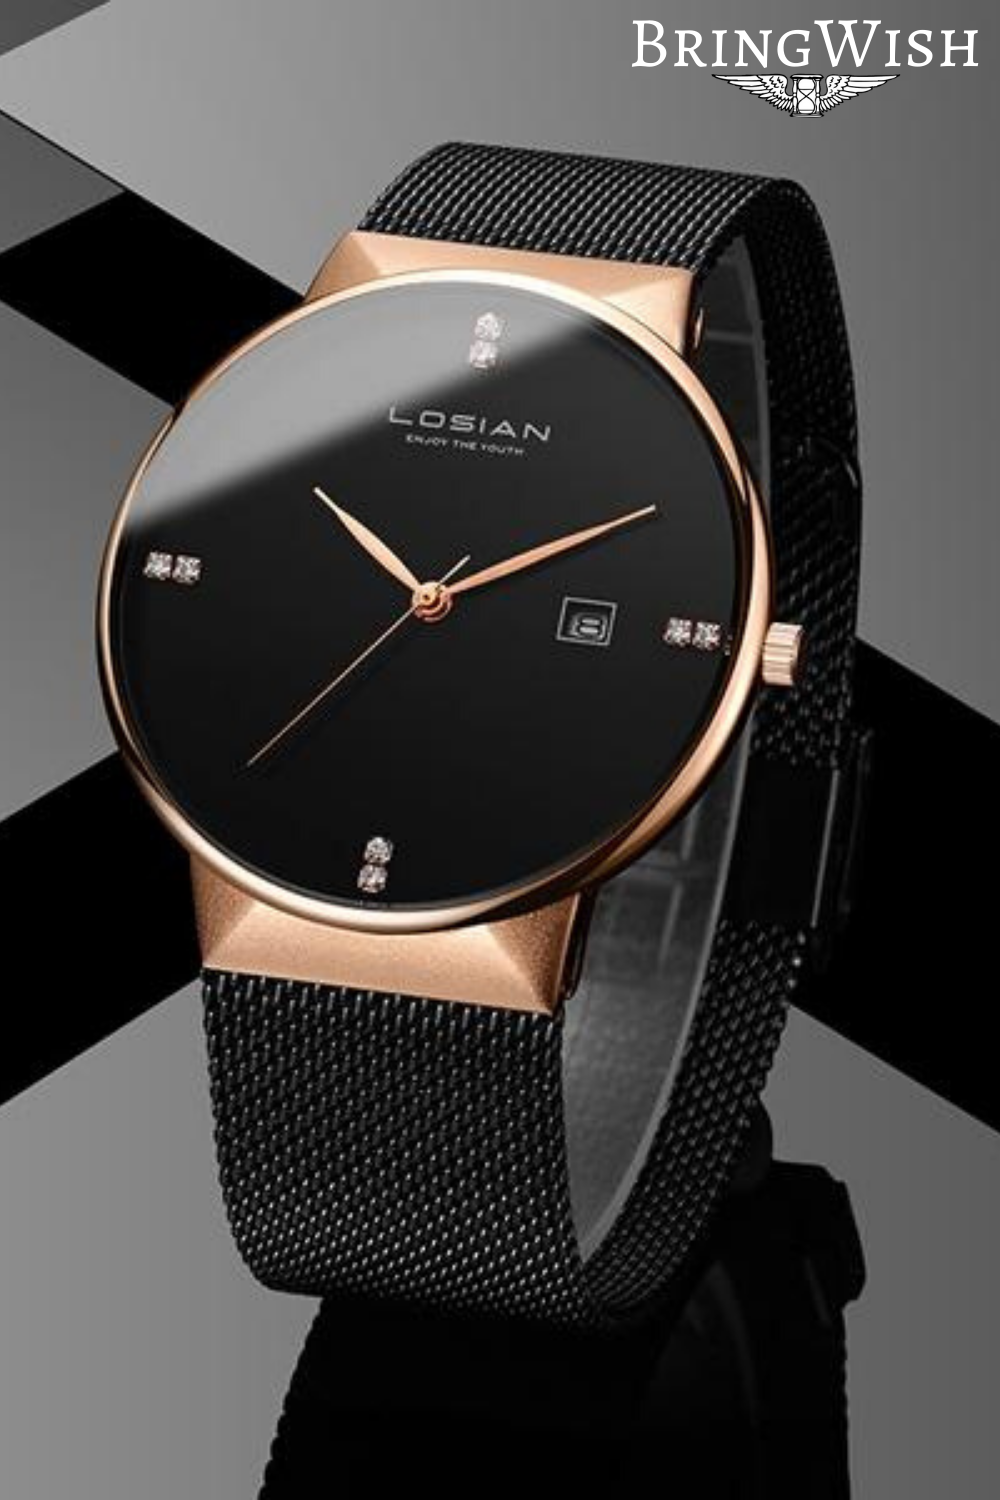 Diamond Minimalist Rose Gold Watch With Black Band Band Black Diamond Gold Mensaccesso In 2020 Luxury Watches For Men Mens Accessories Fashion Watches For Men